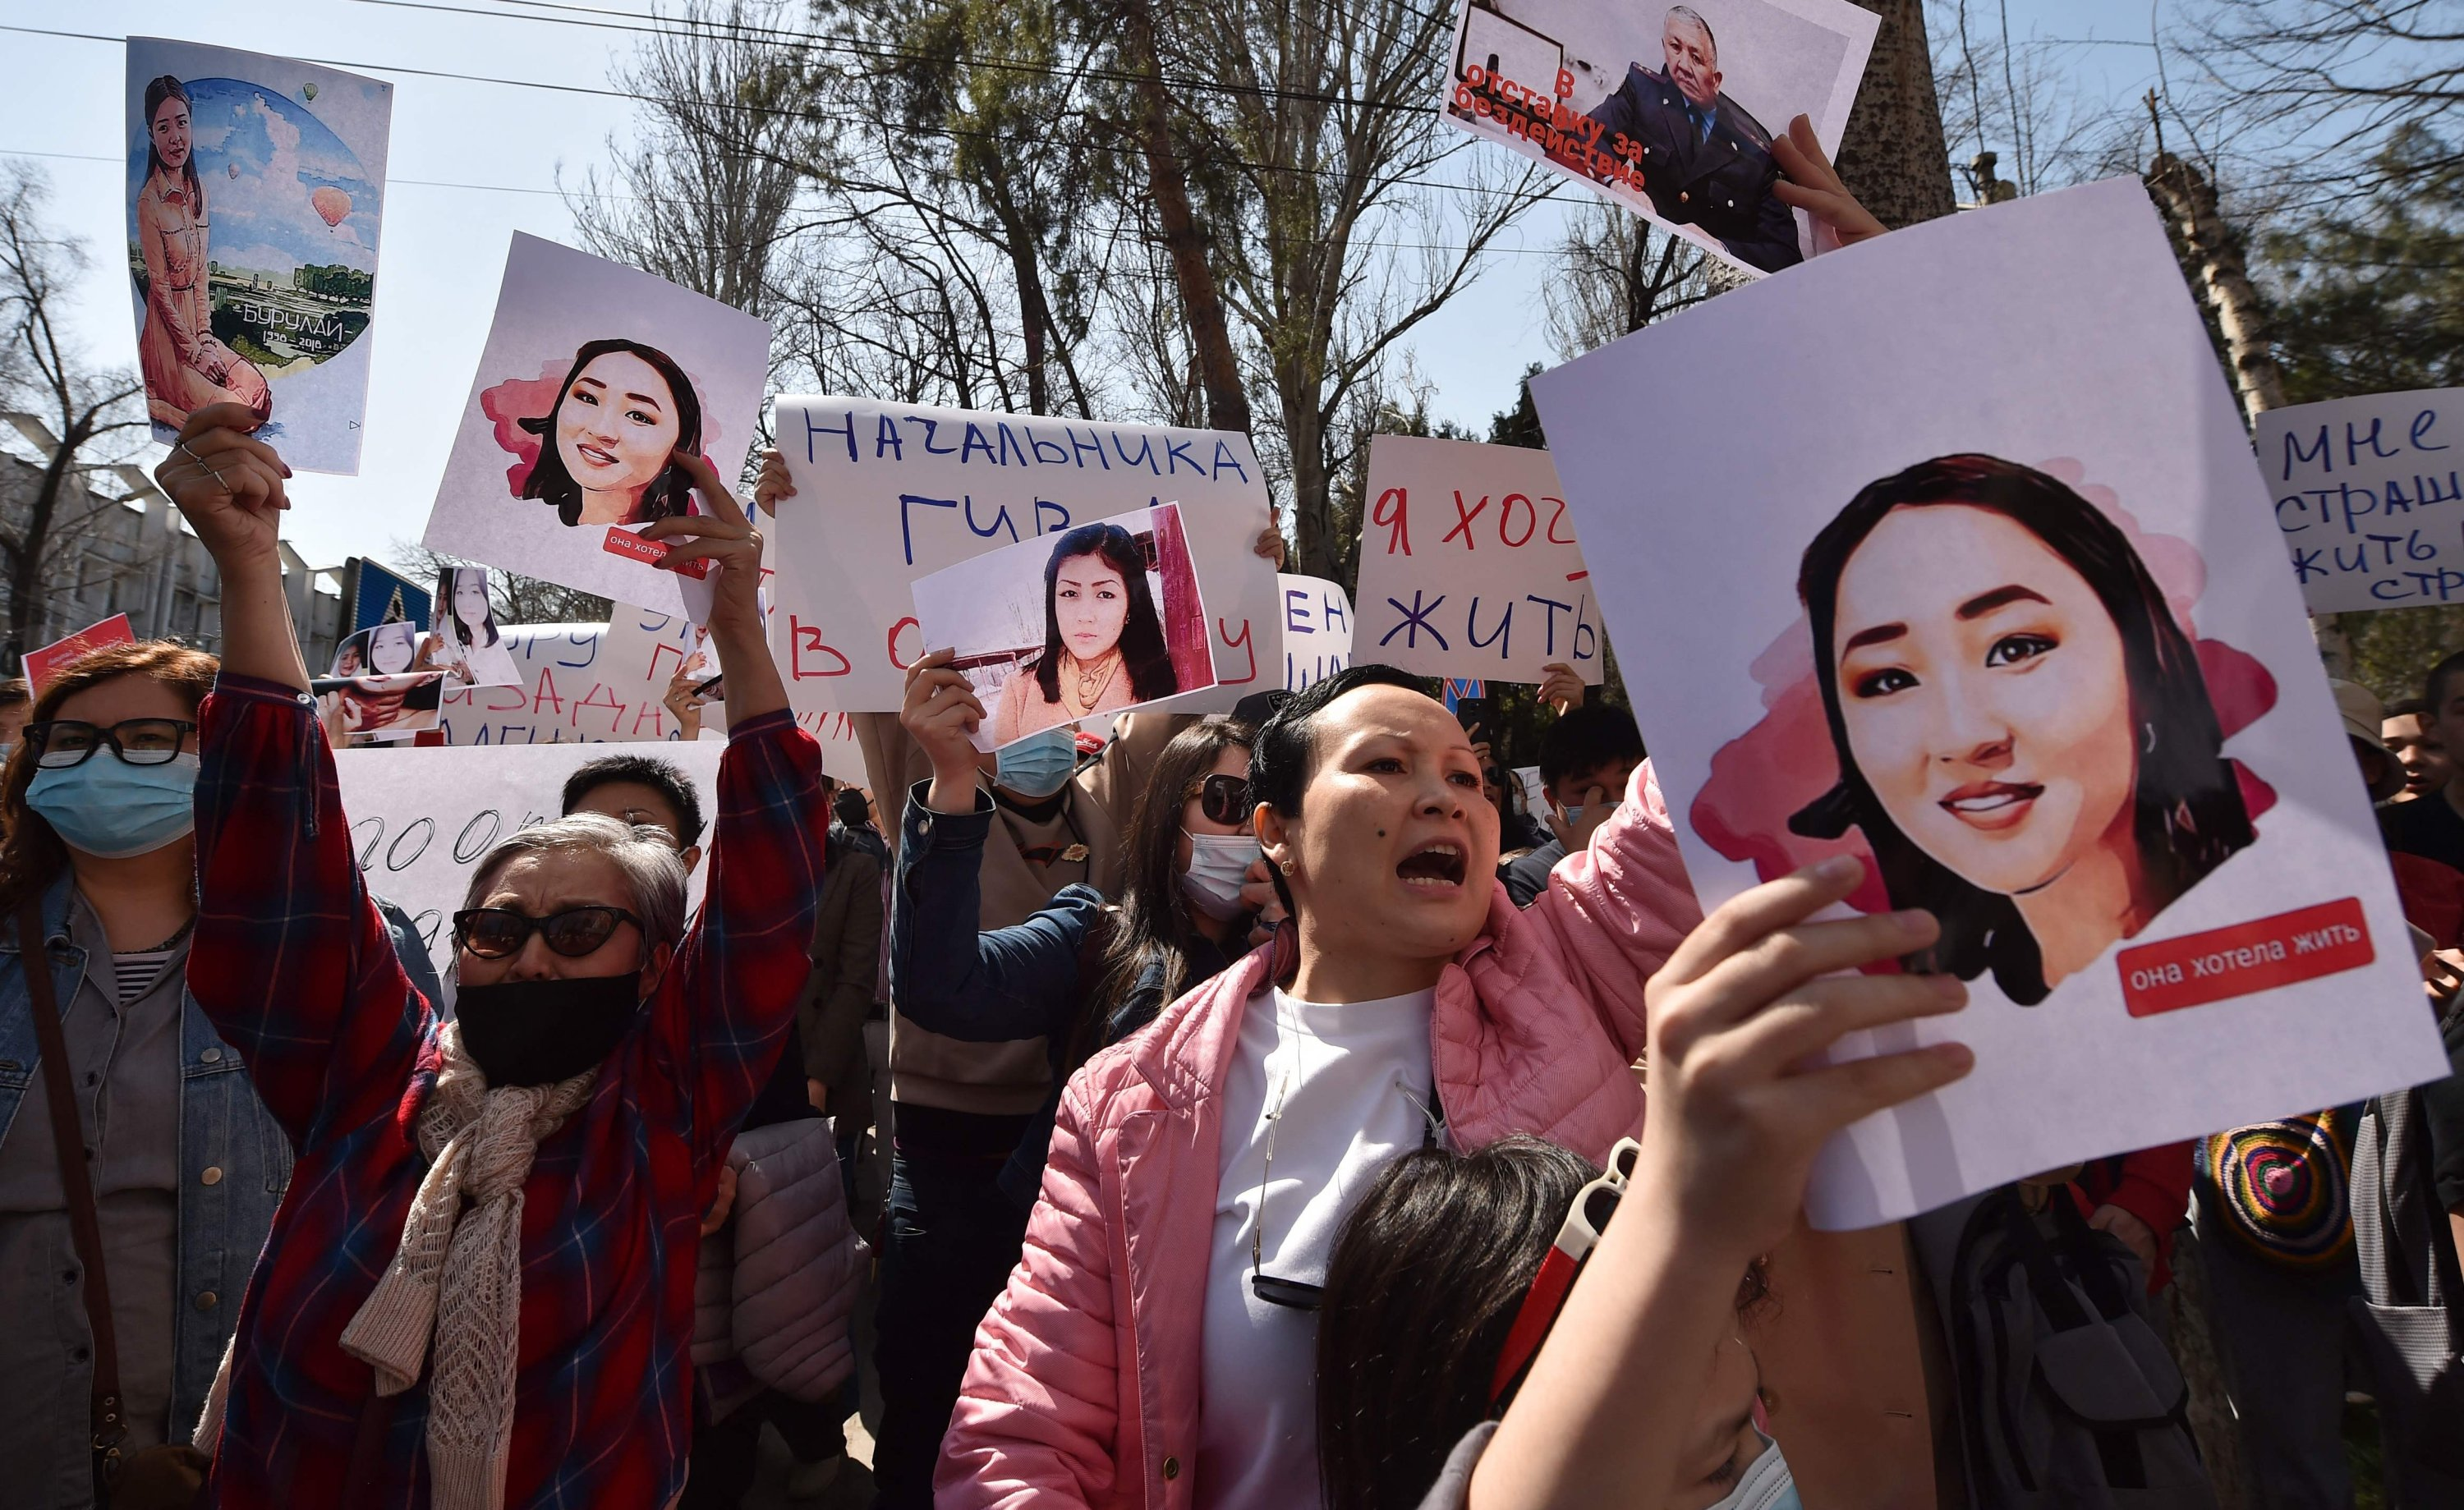 Bride kidnapping, murder of woman spark protests in Kyrgyzstan   Daily Sabah